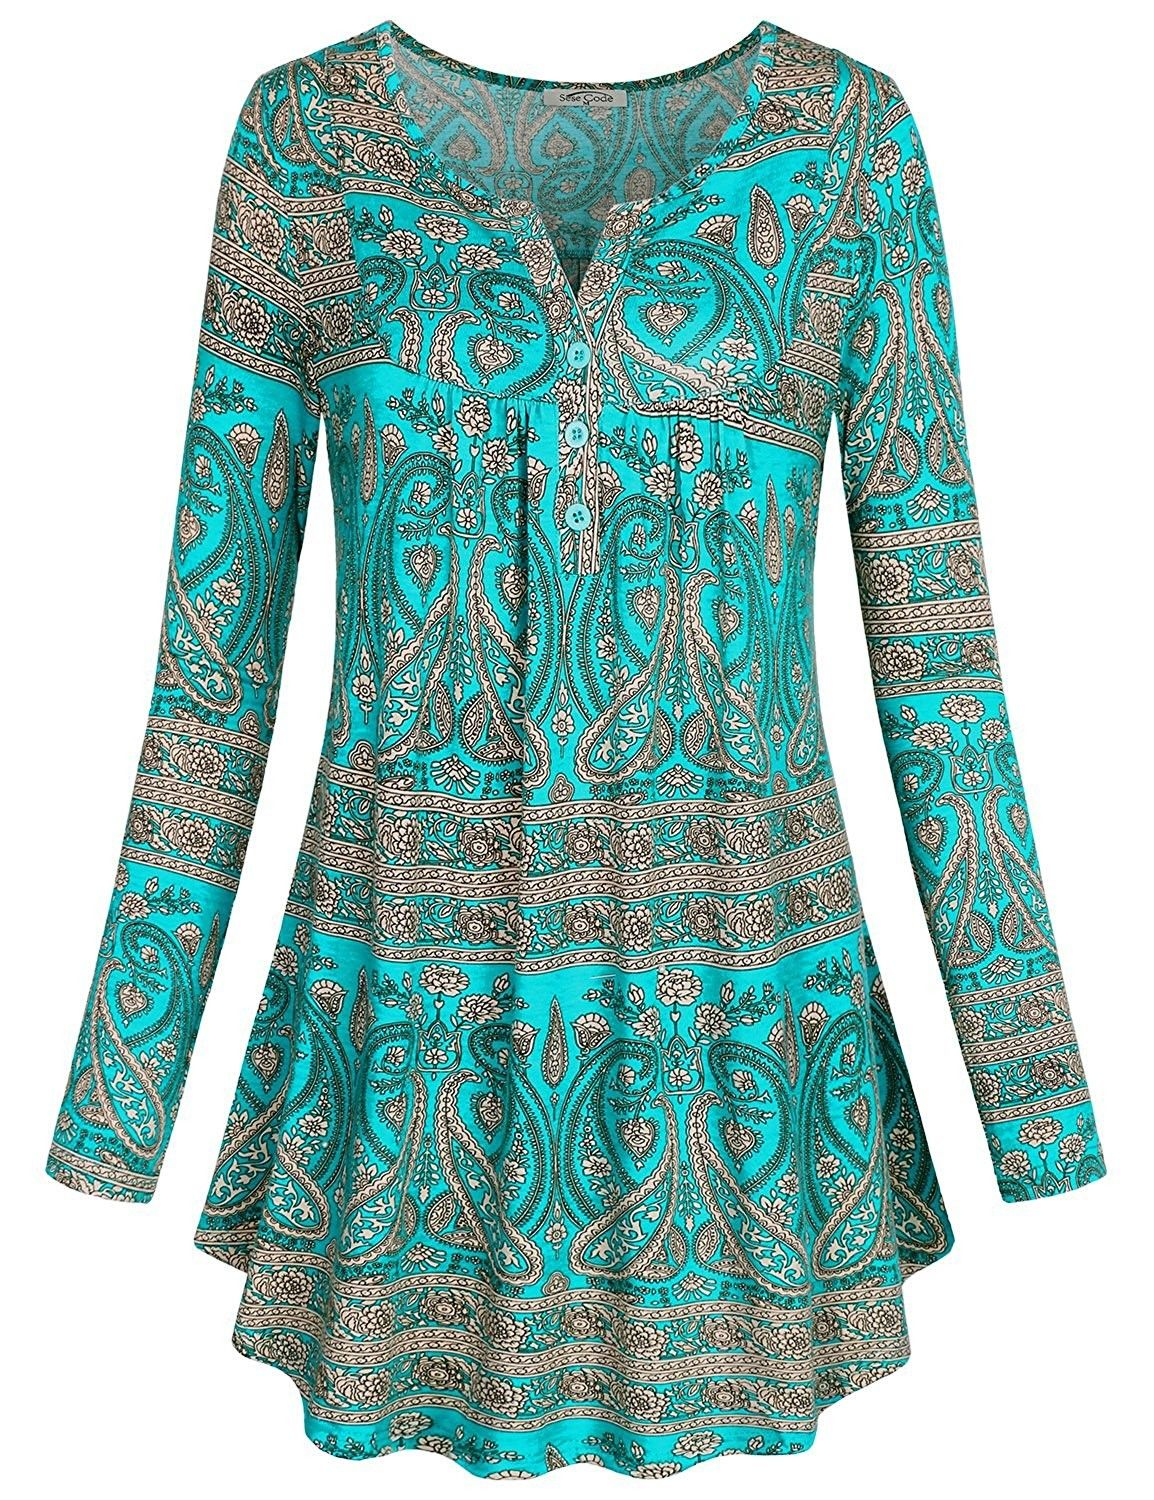 Women's Clothing, Tops & Tees, Tunics, Women's Crewneck Long Sleeve Floral  Shirts Flared Casual Tunic Tops(F…   Clothes for women, Long sleeve tunic  top, Tunic tops